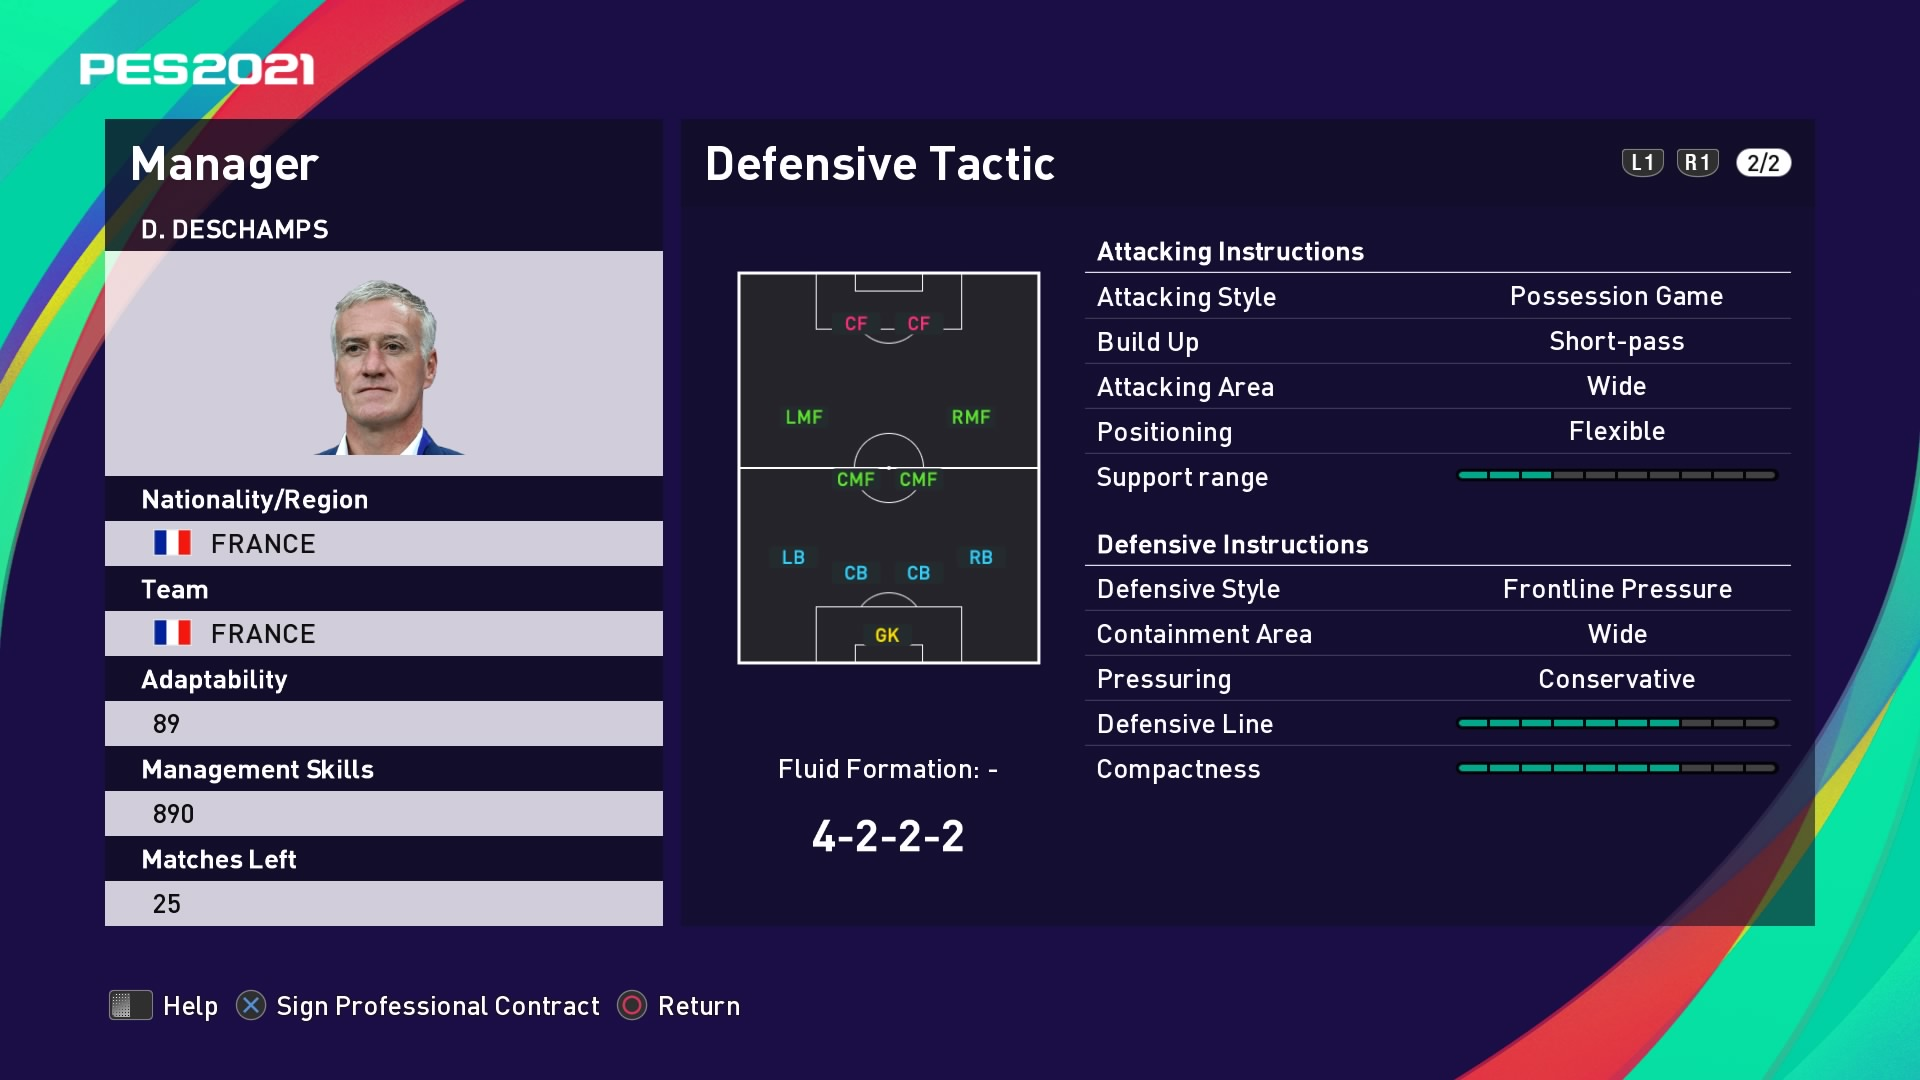 D. Deschamps (Didier Deschamps) Defensive Tactic in PES 2021 myClub